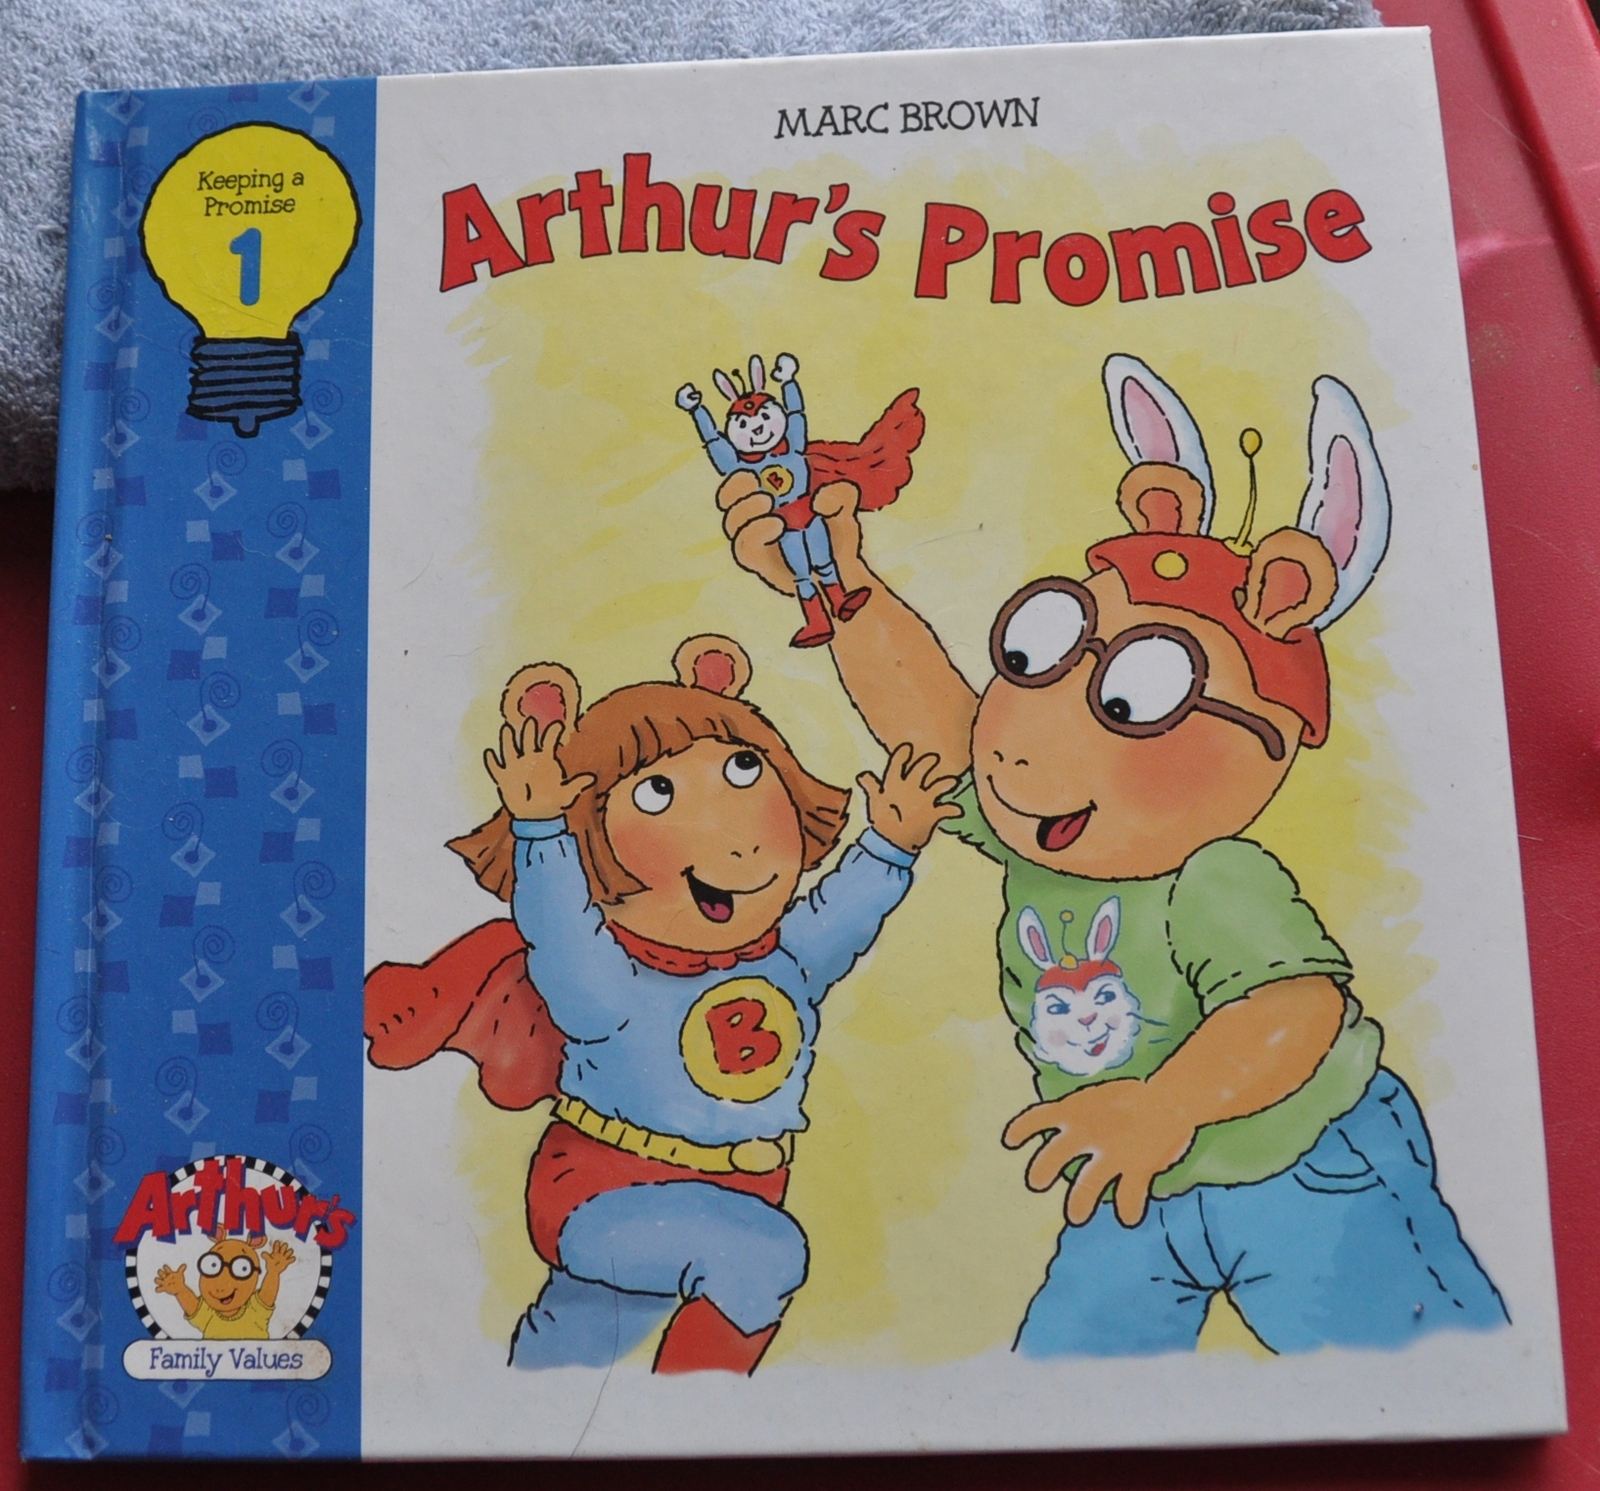 Marc Brown- Arthur's Promise: Arthur Family Value Series #1 - Keeping a promise